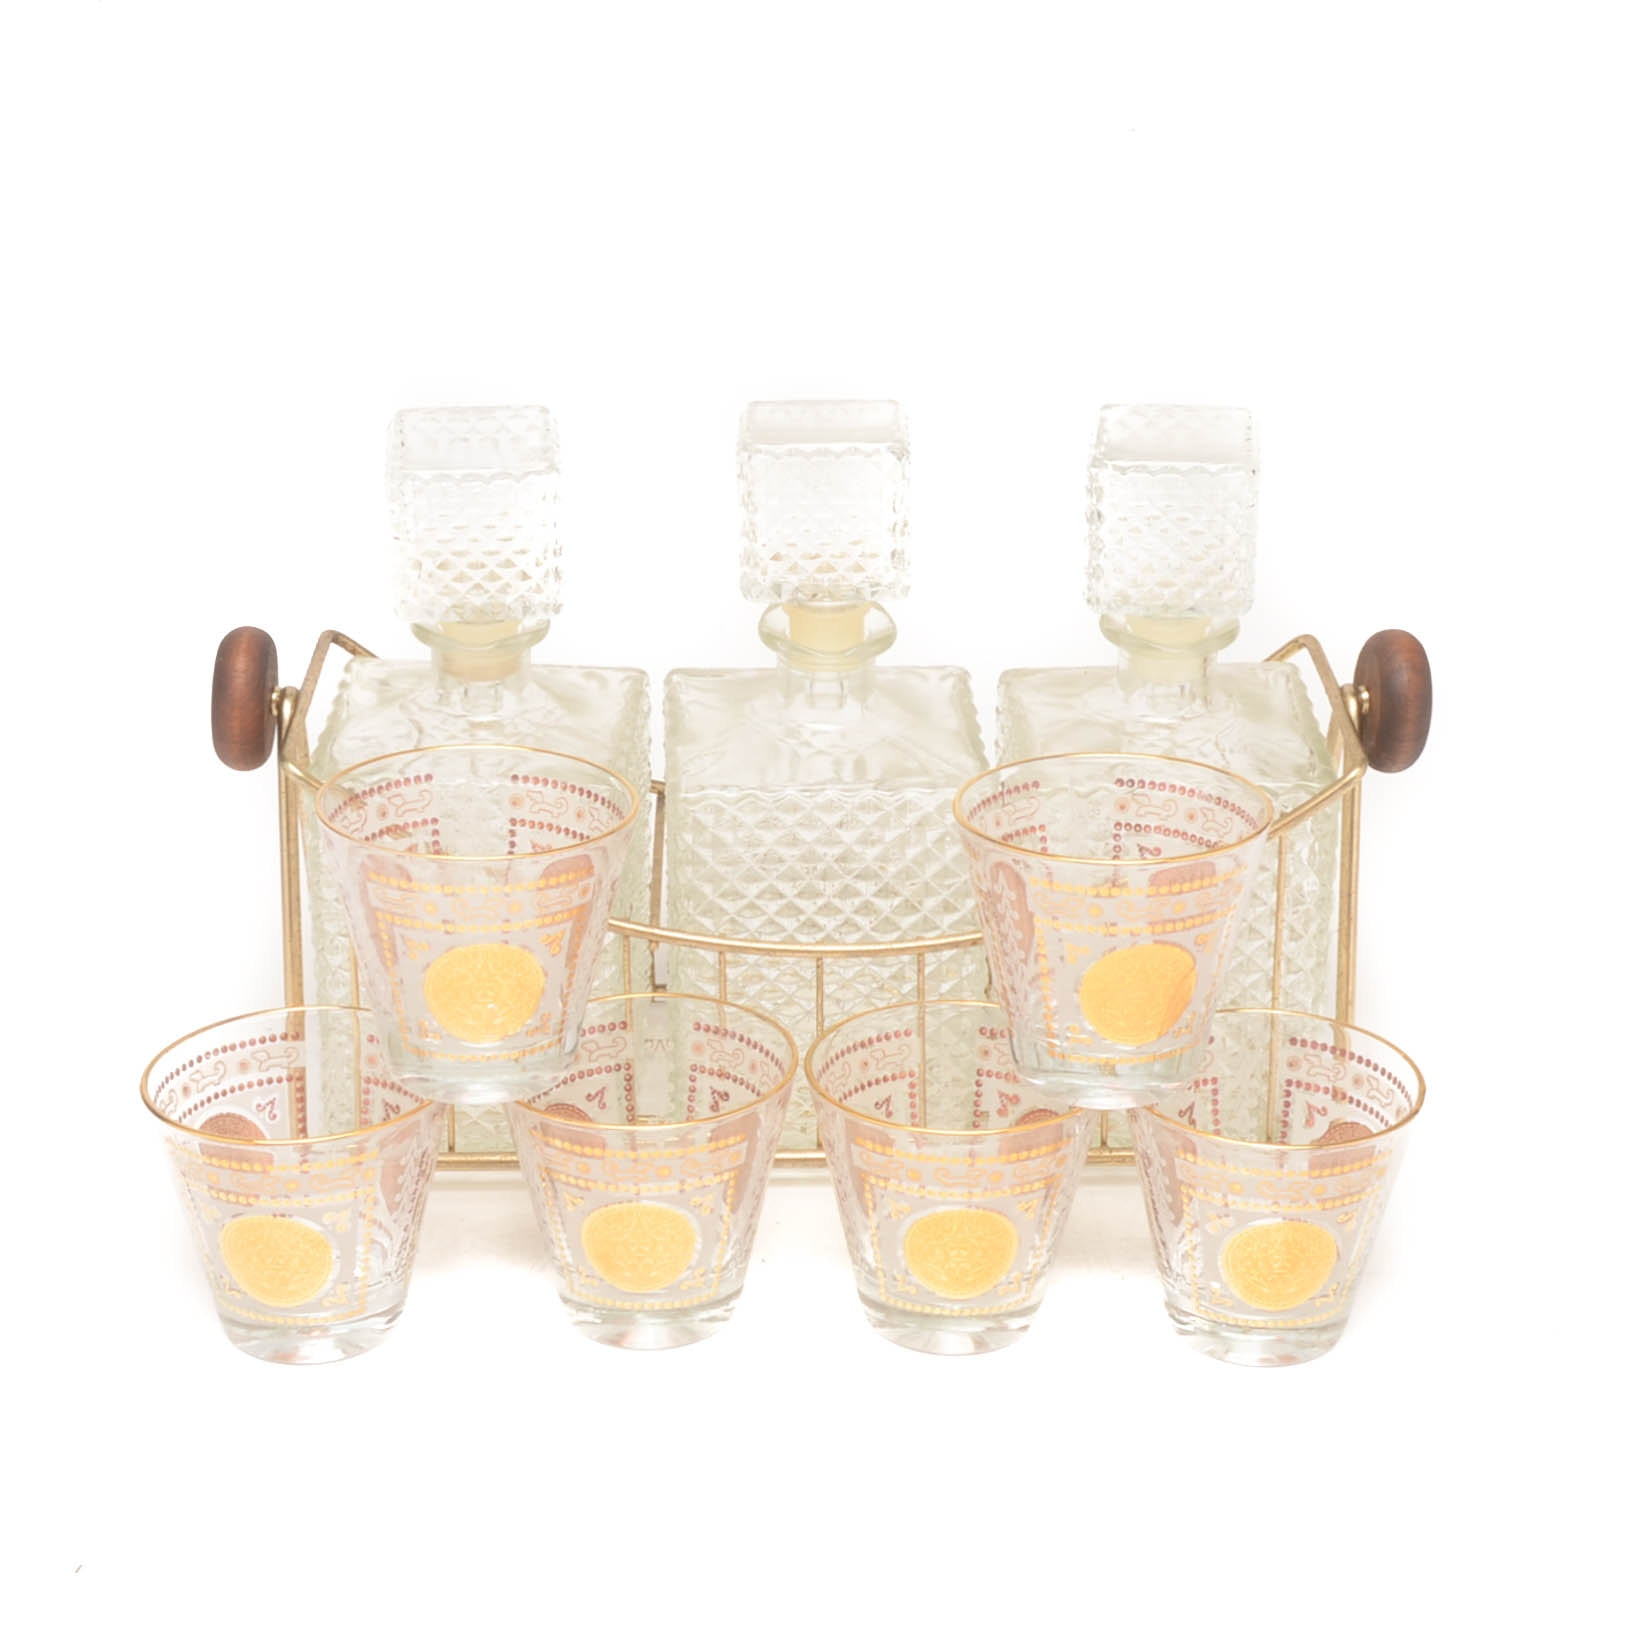 Mid Century Glass Decanter with Caddy and Aztec Themed Cocktail Glasses